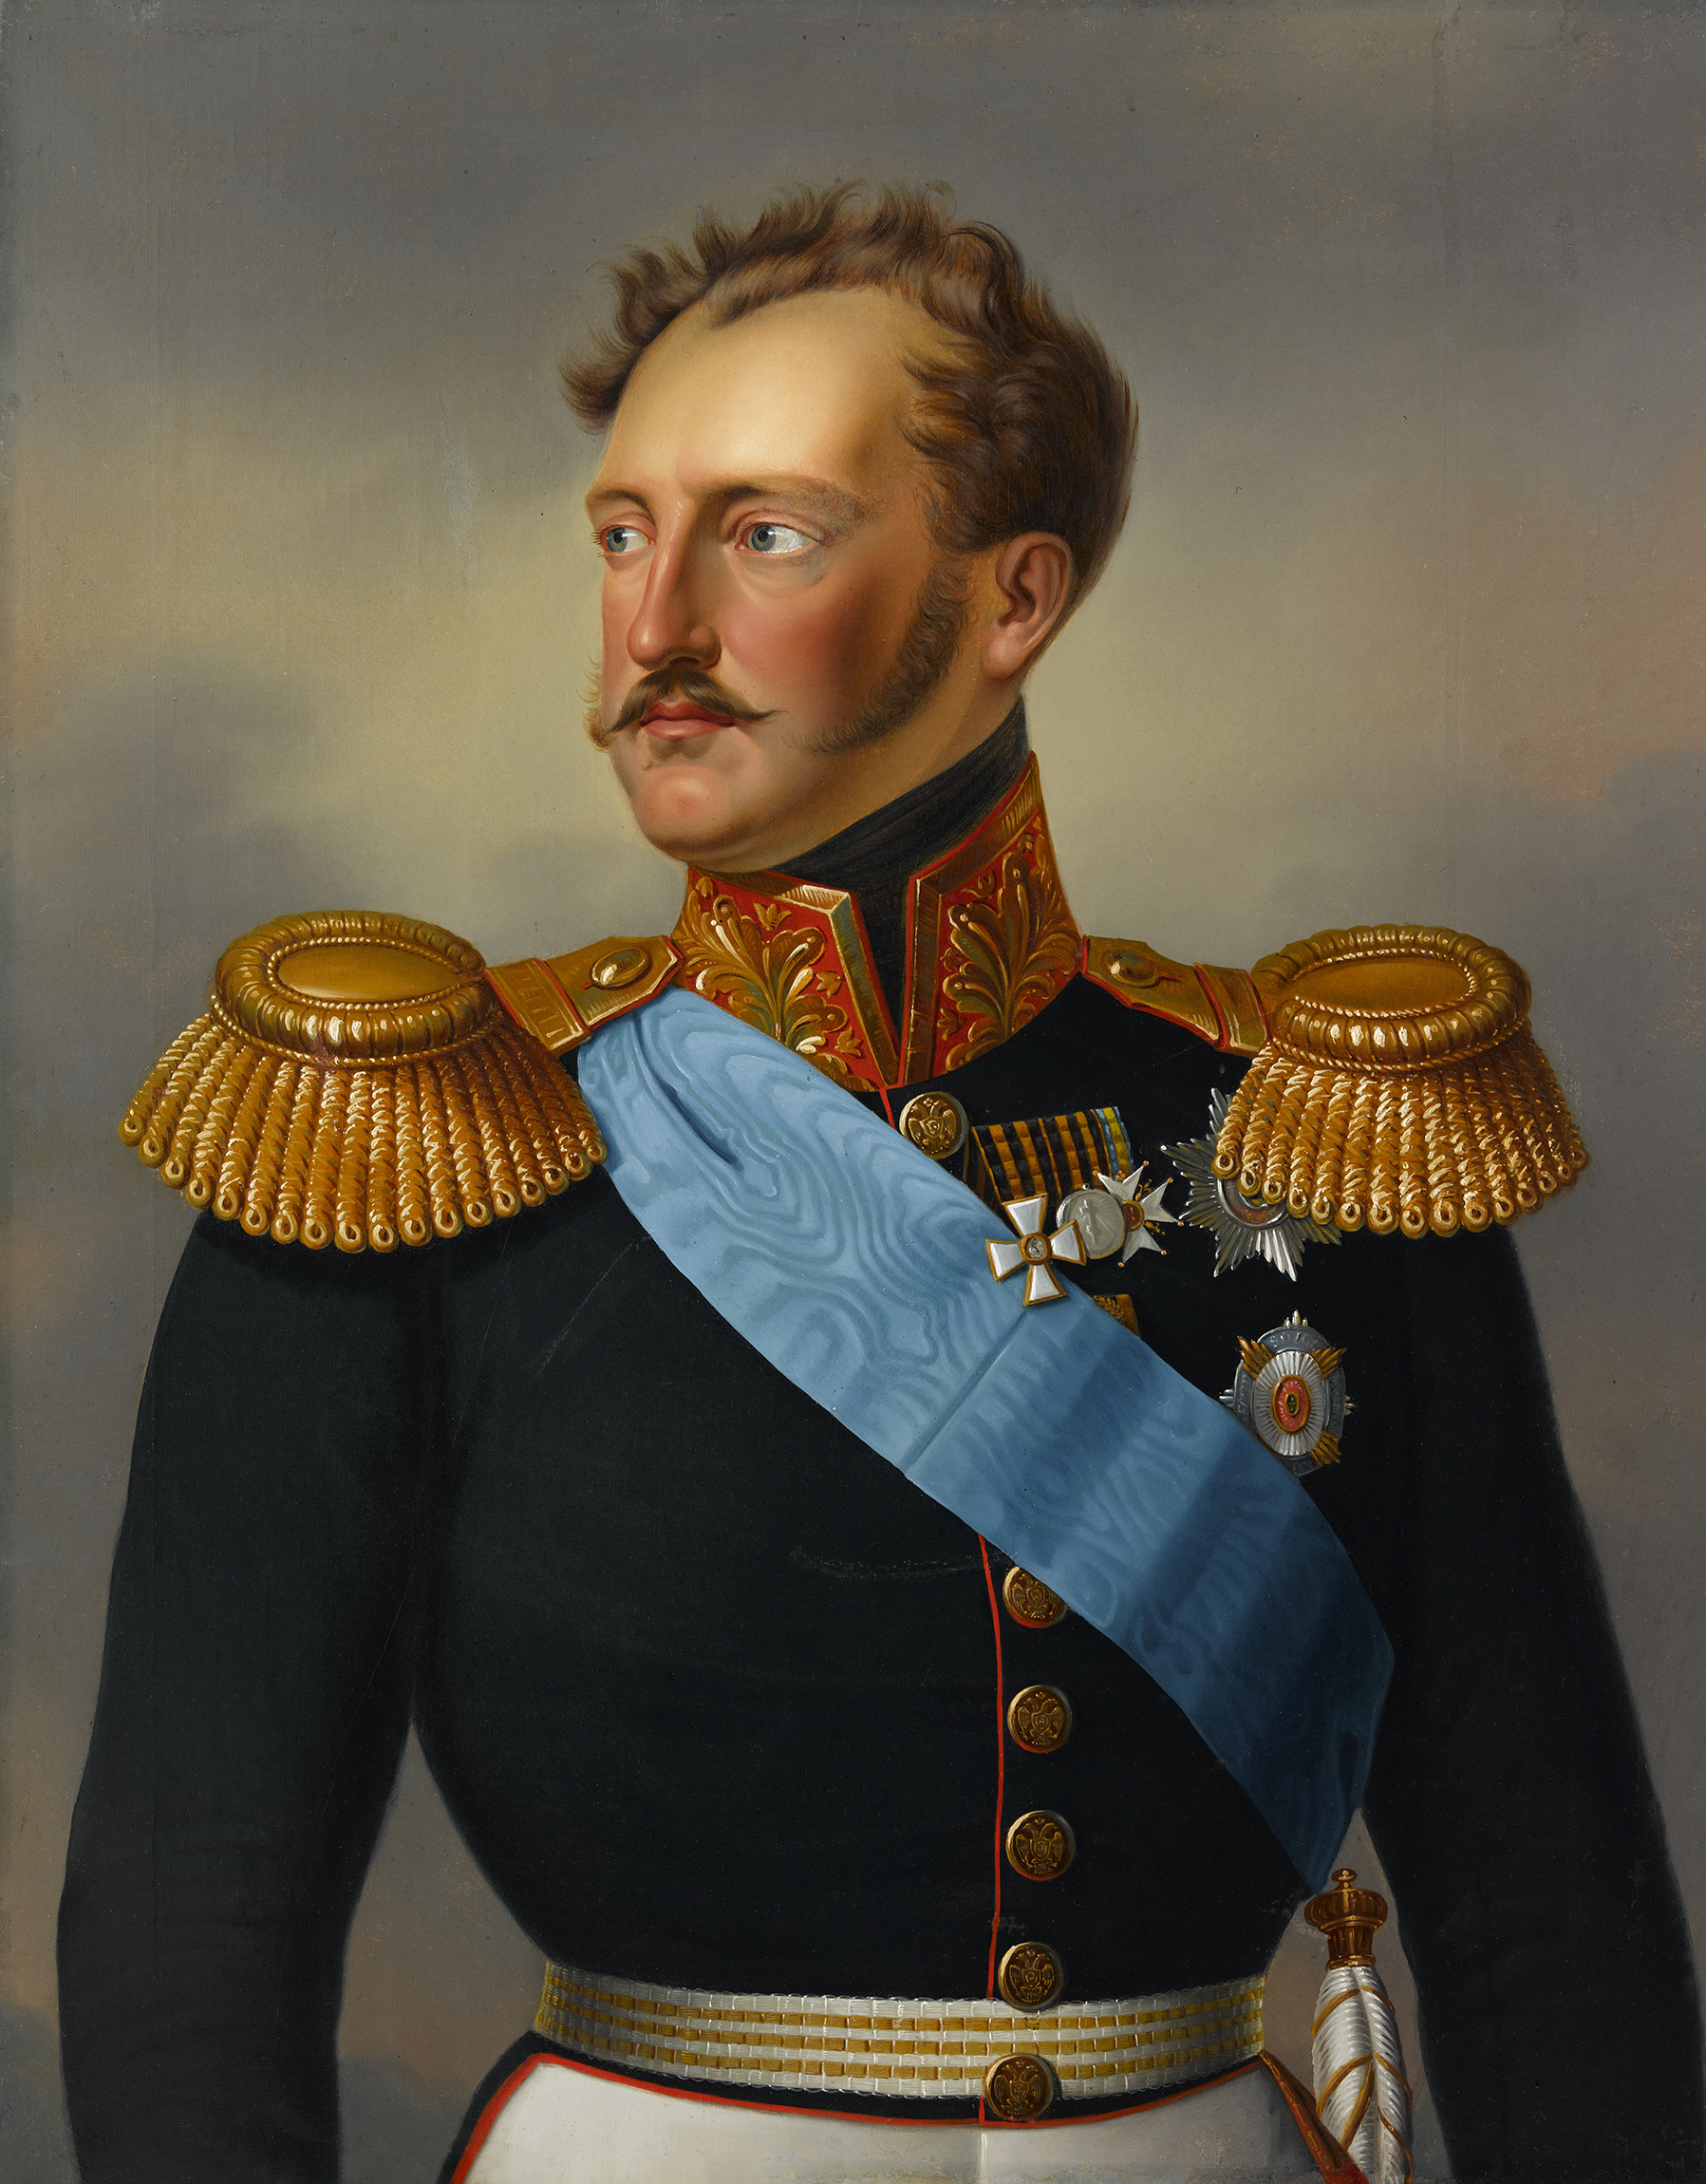 Portrait of Nicholas I (1796-1855), Emperor and Autocrat of All the Russias (1825-1855) | Portraits of Kings